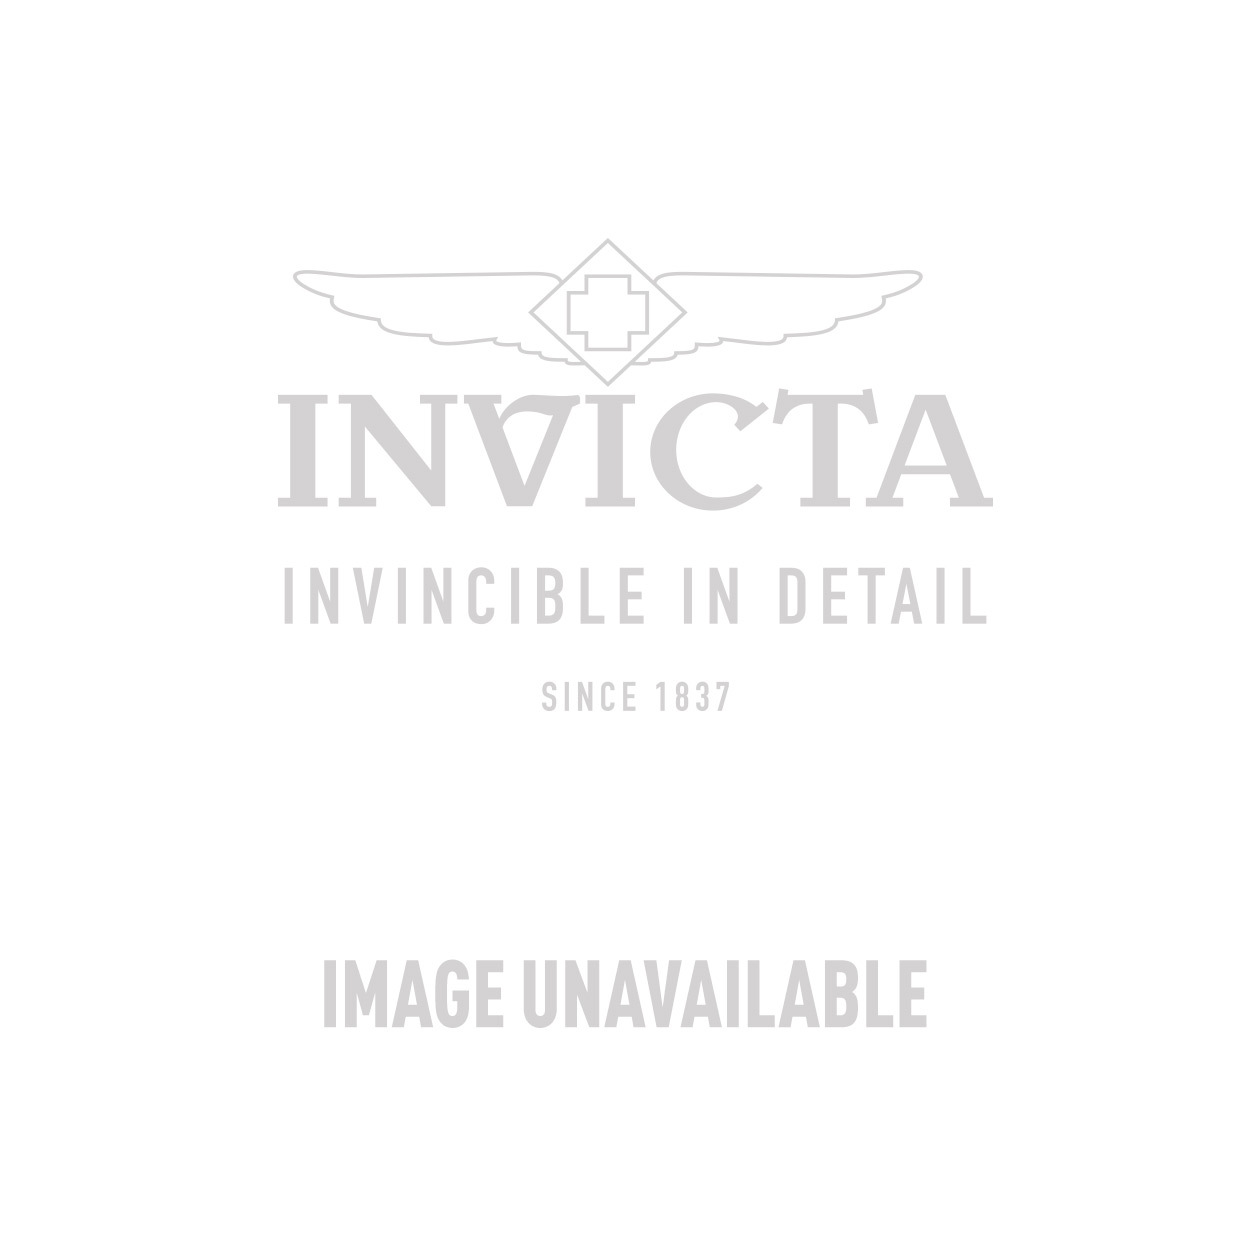 Invicta Bolt Swiss Made Quartz Watch - Stainless Steel case Stainless Steel band - Model 19543